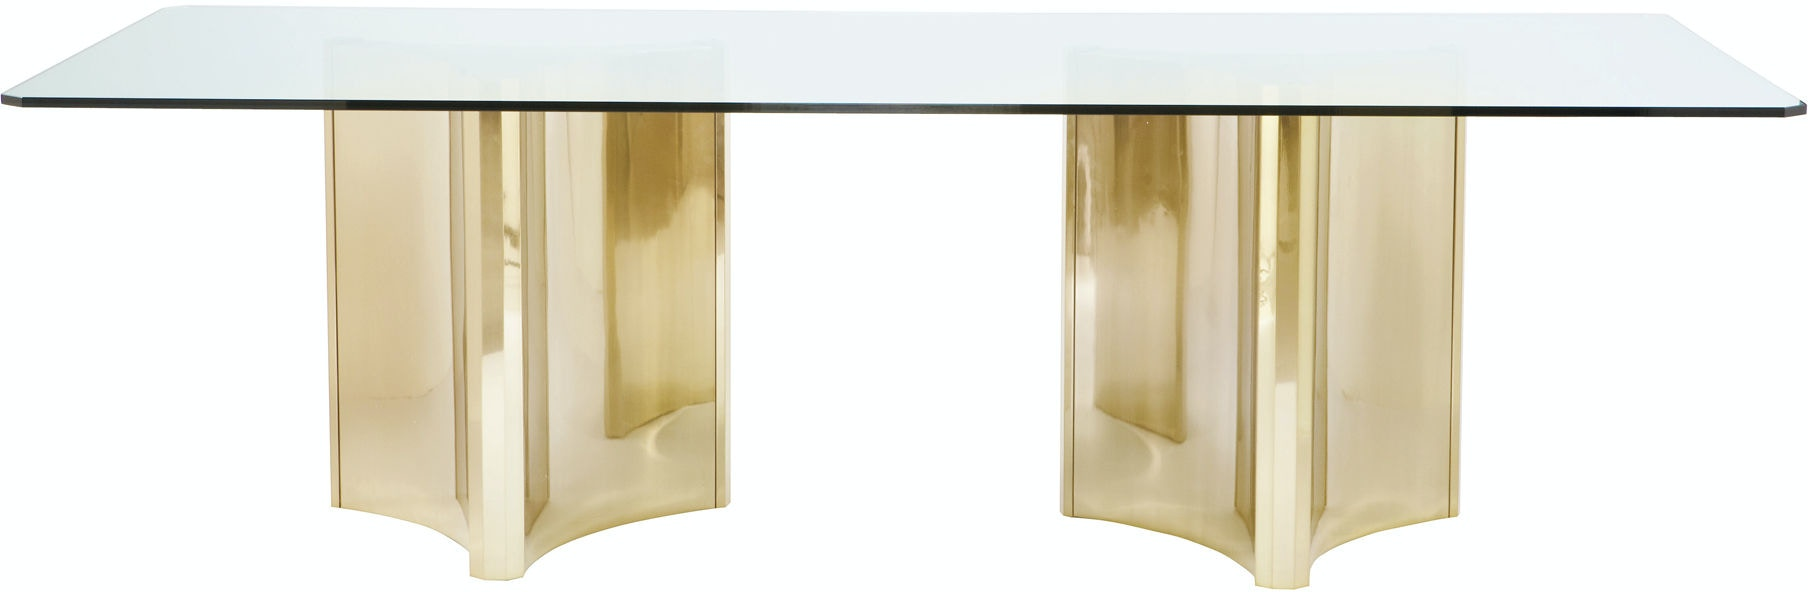 Bernhardt Interiors Dining Room Metal Dining Table with  : 326 1050353 772 2 from www.hickoryfurniture.com size 1024 x 768 jpeg 17kB